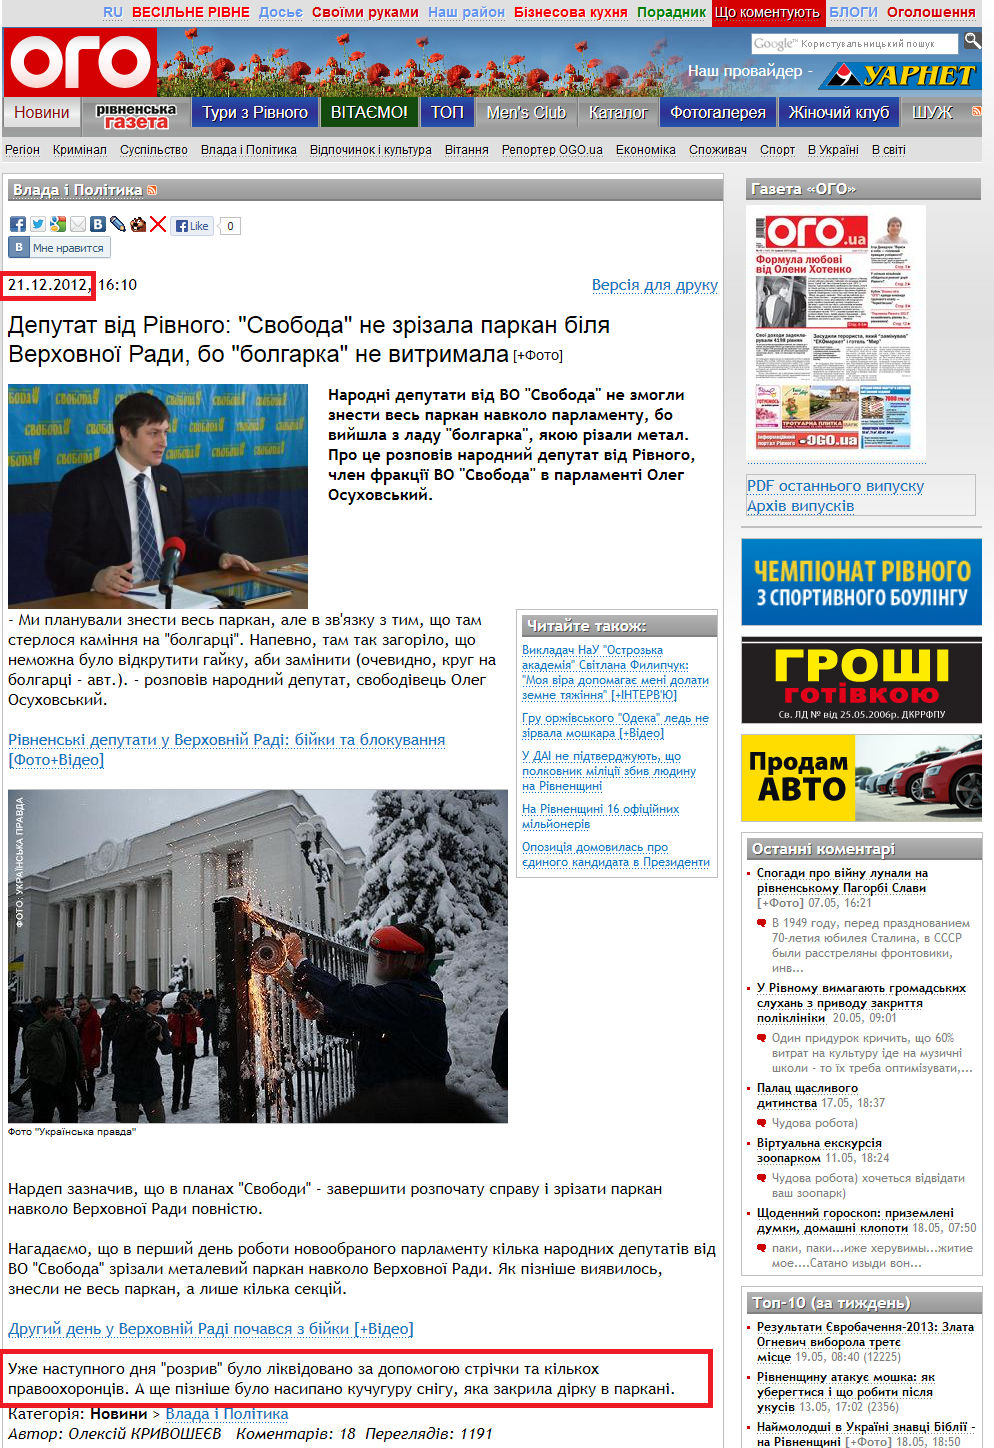 http://www.ogo.ua/articles/view/2012-12-21/37018.html